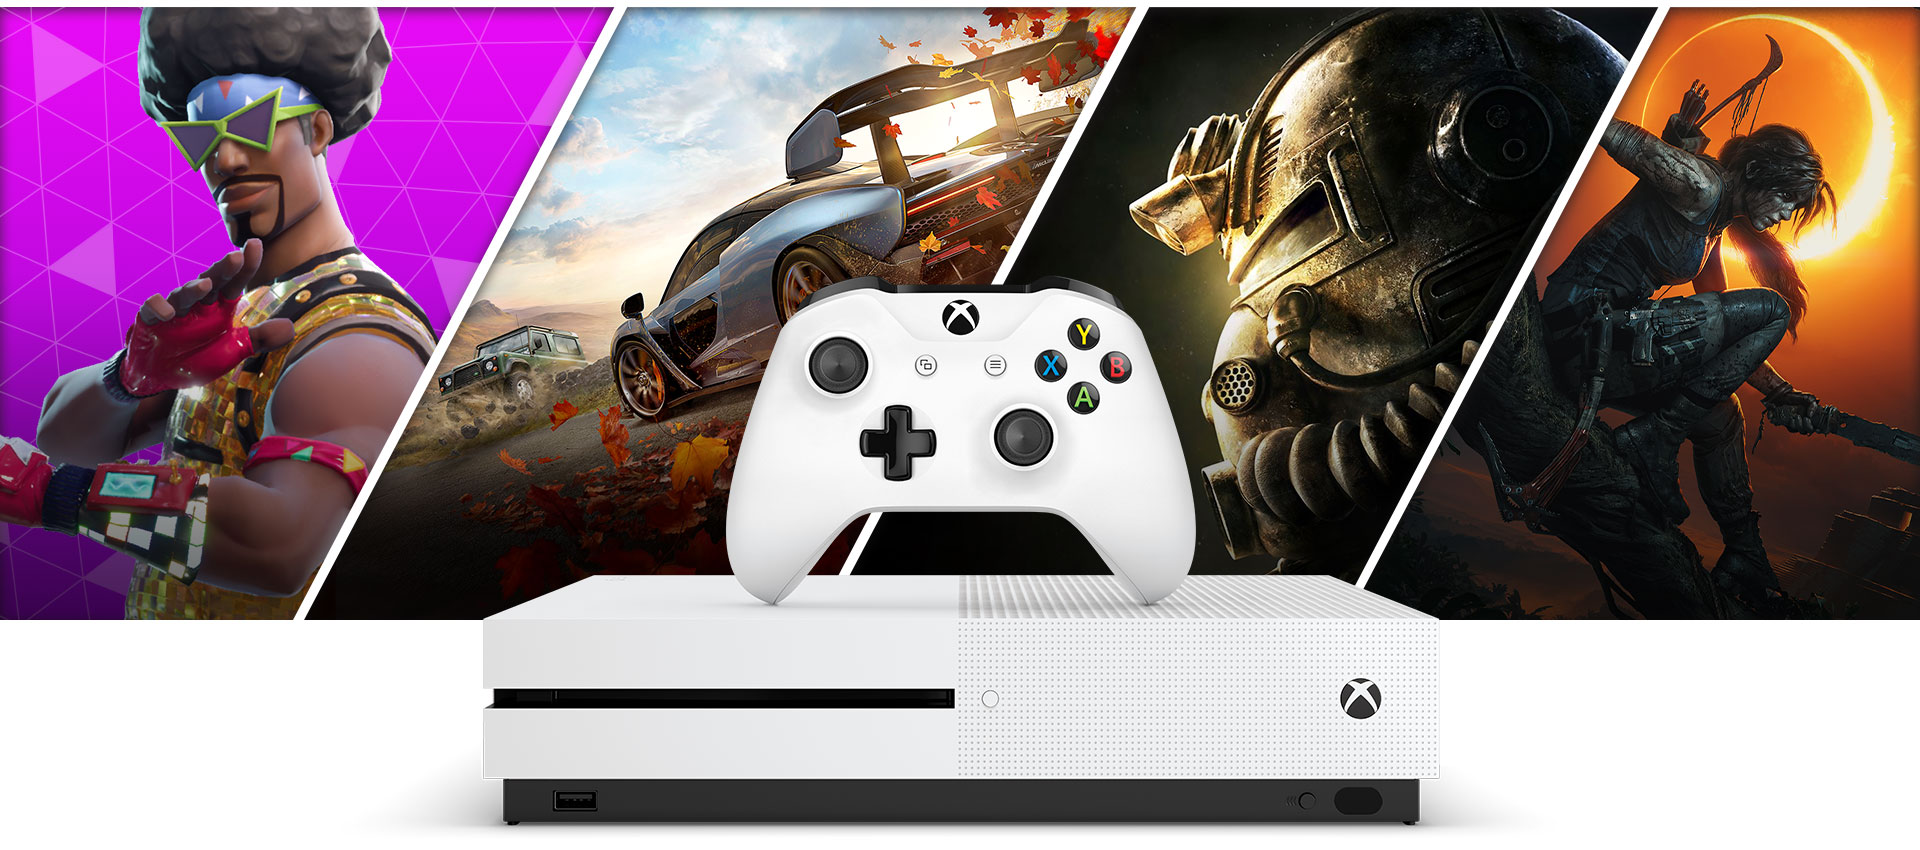 Xbox One S と白の Xbox コントローラーの背後に Fortnite、Forza Horizon 4、Fallout 76、NBA 2K19 の画像